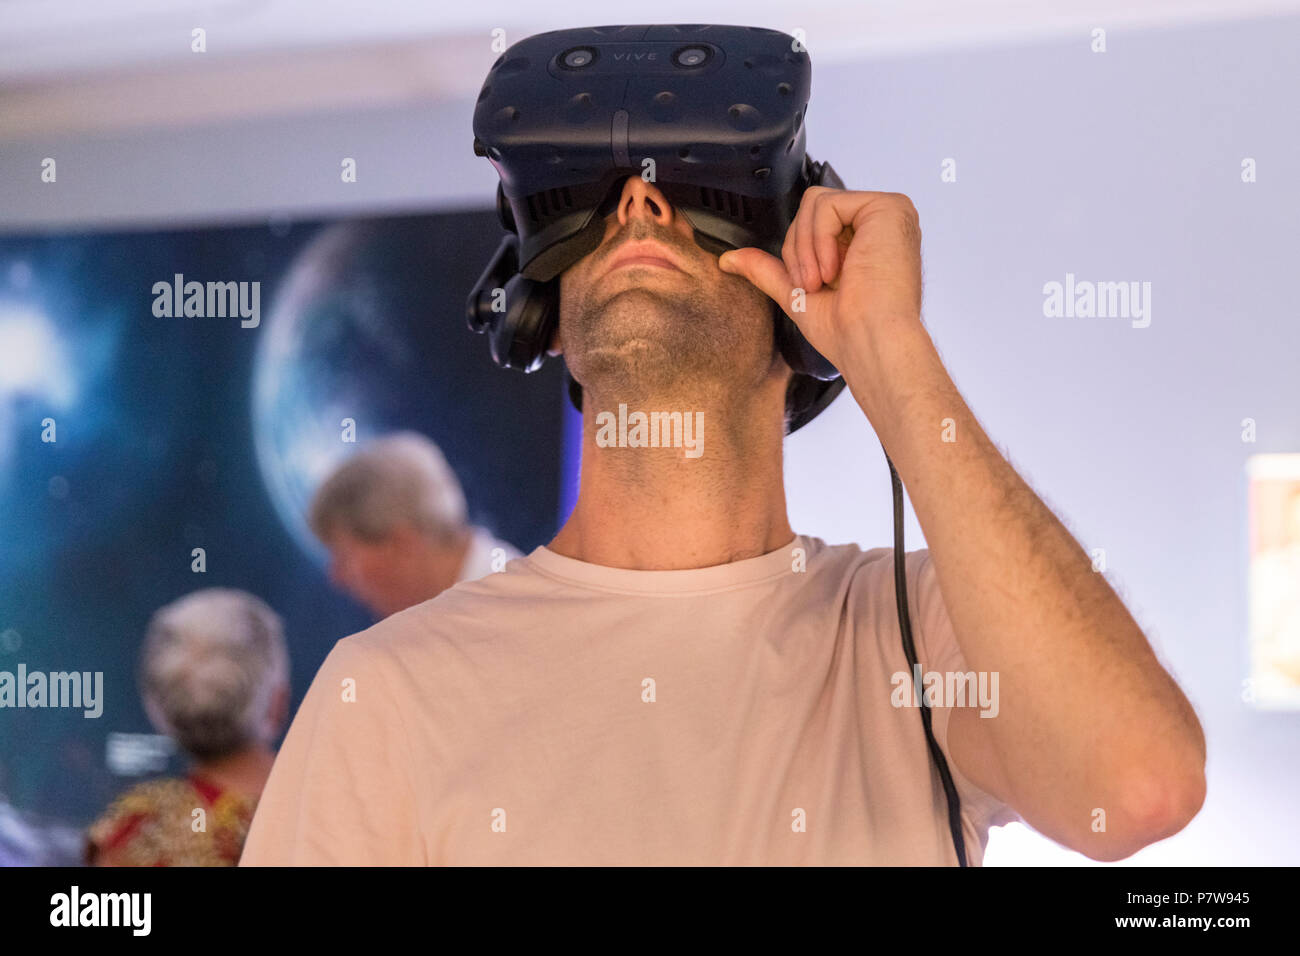 London, 8th July 2018.The British Interplanetary Society features the 'Space Refugee' installation, about first Syrian cosmonaut Muhammed Faris, including and a virtual reality Mars walk virtual reality simulation. Art Night 2018 features 12 special projects curated by Hayward Gallery and over 50 presented in Art Night Open curated by cultural organisations and creatives throughout South Bank, Vauxhall and Nine Elms, on Saturday 7th and Sunday 8th July. Credit: Imageplotter News and Sports/Alamy Live News - Stock Image